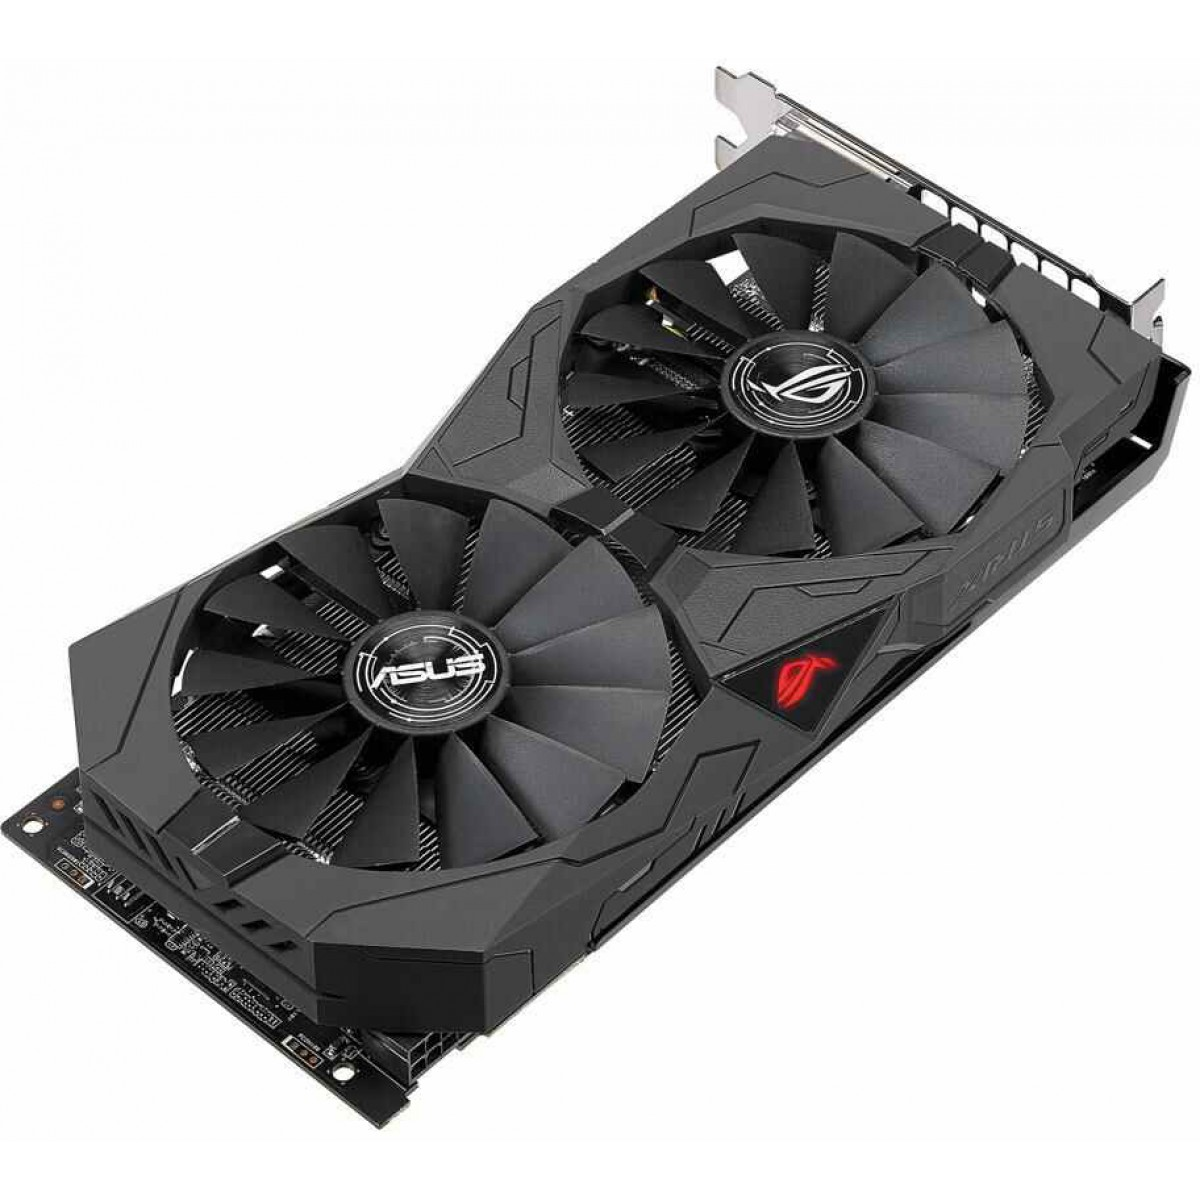 Placa de Video Asus RX 570 Rog Strix 8GB 90YV0AJ8-M0NA00